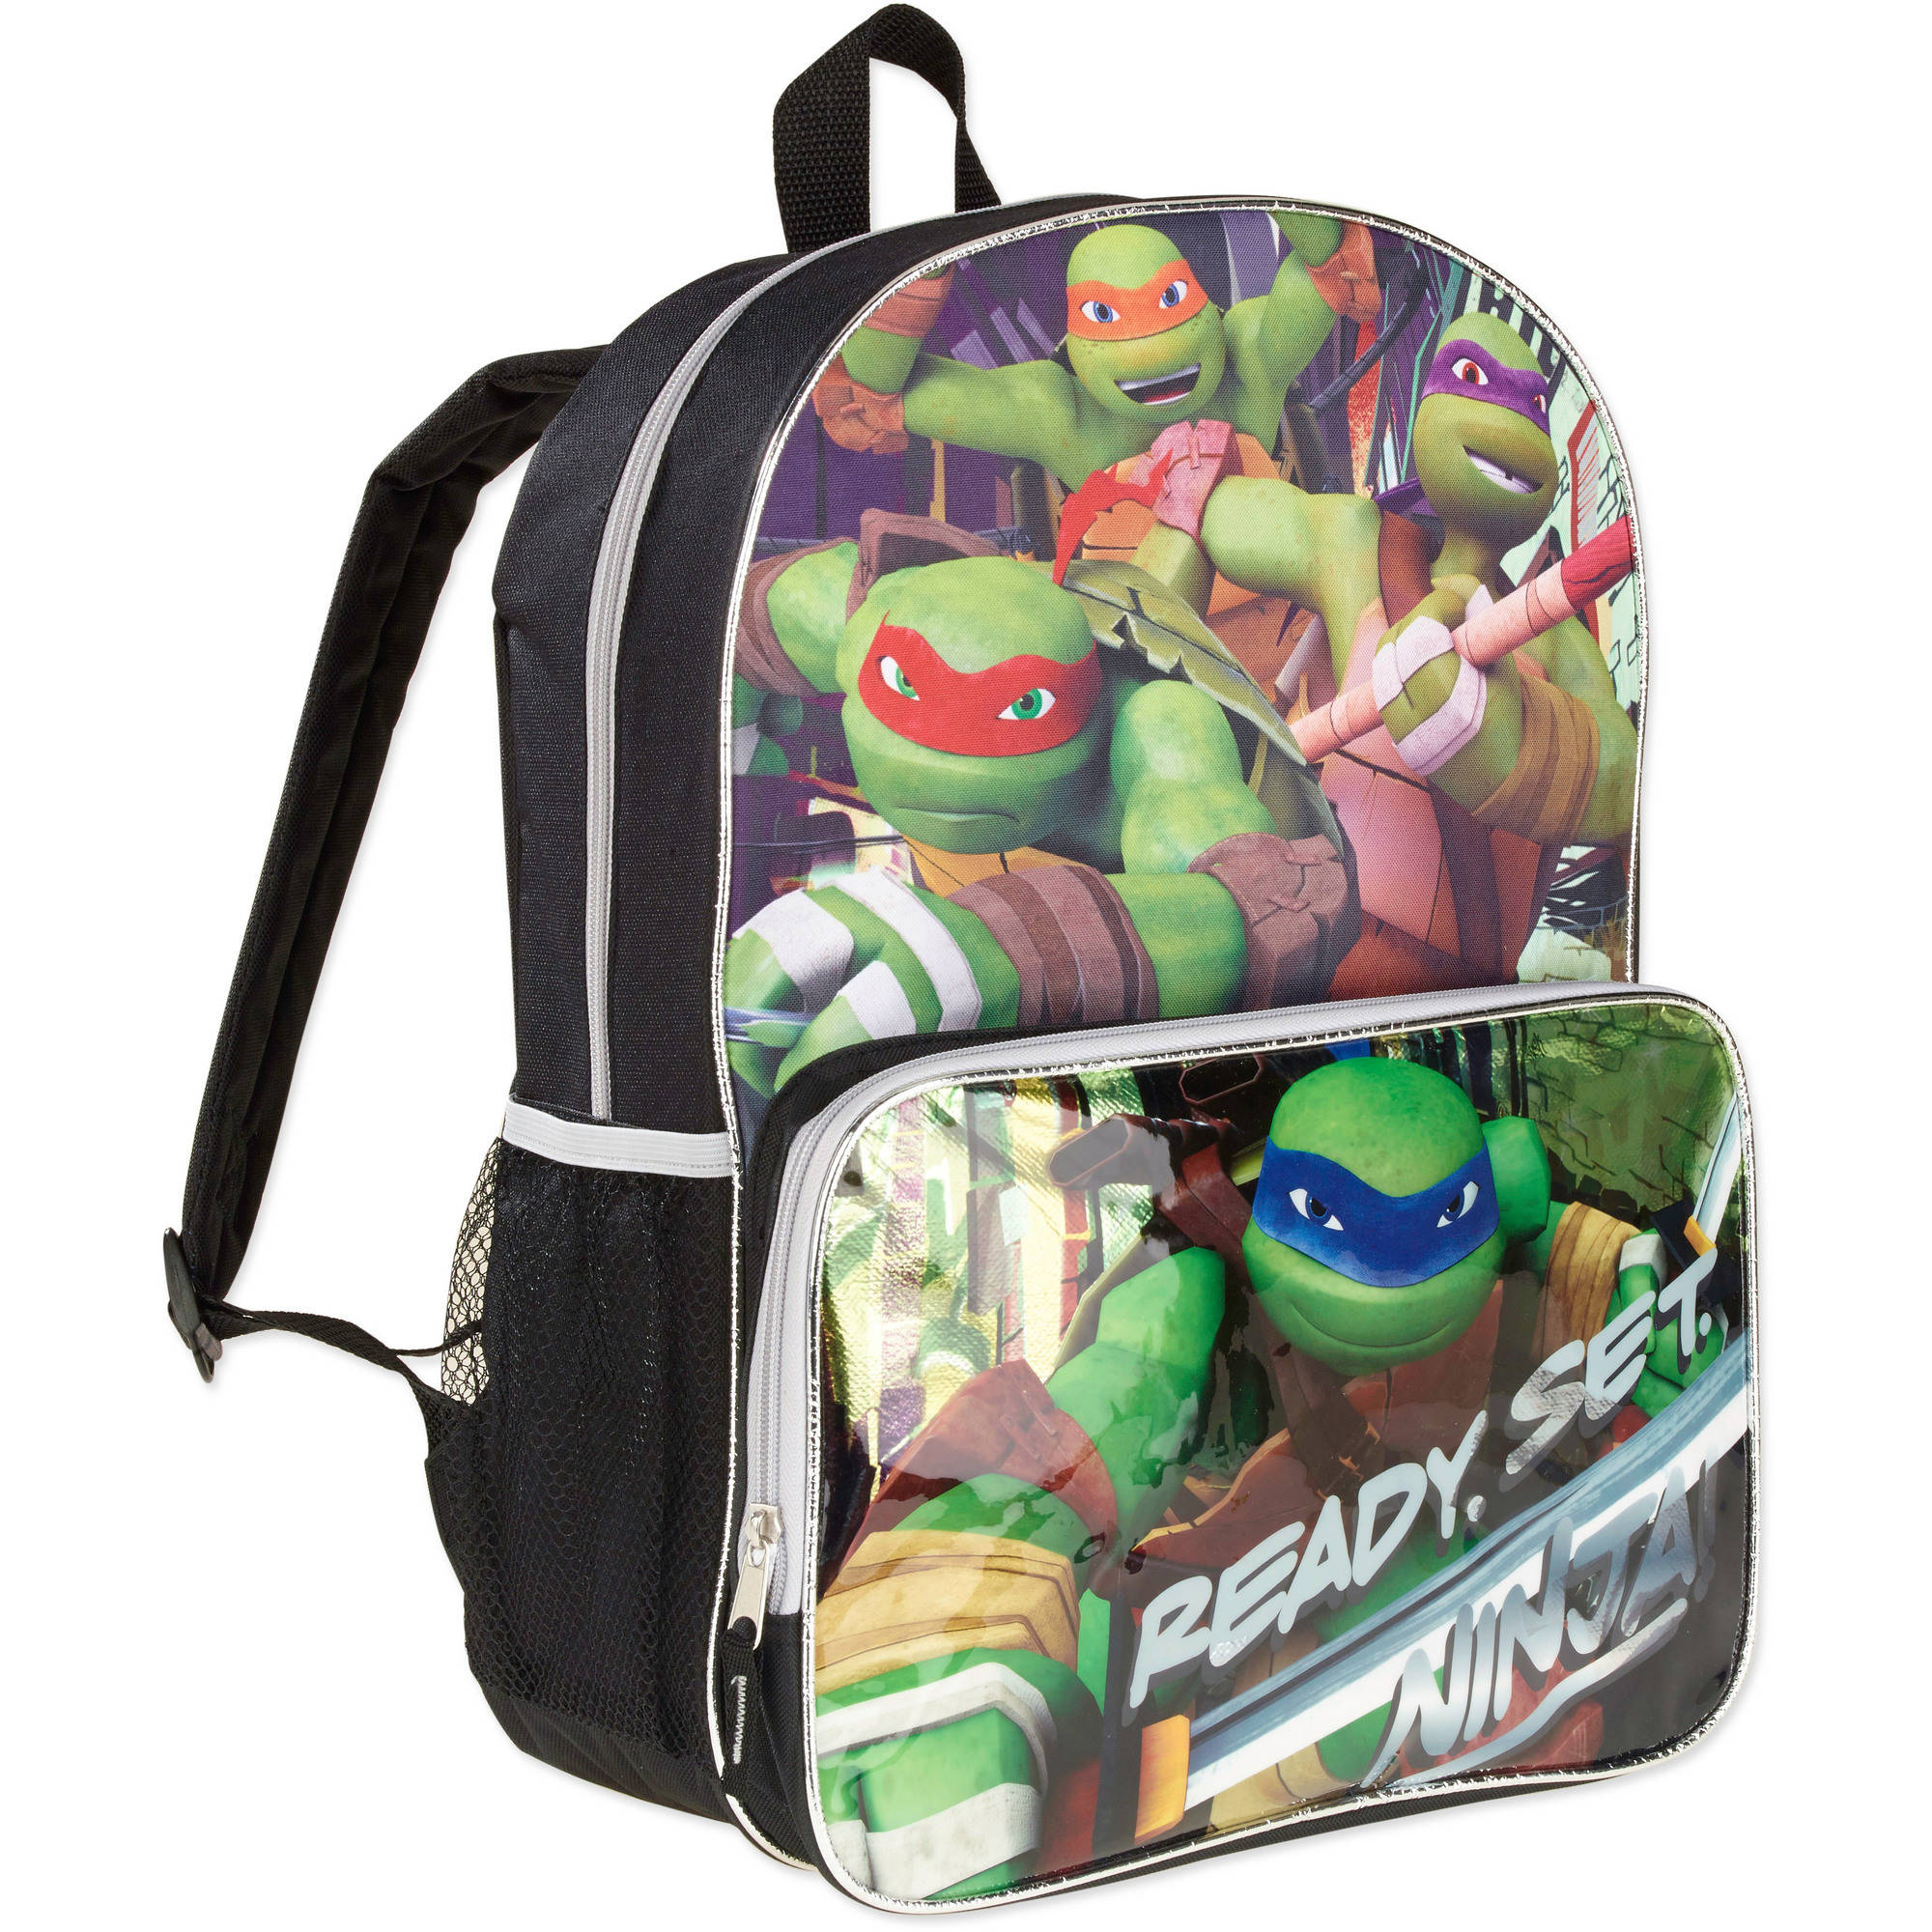 Teenage Mutant Ninja Turtles Ready Set Ninja Kids Backpack